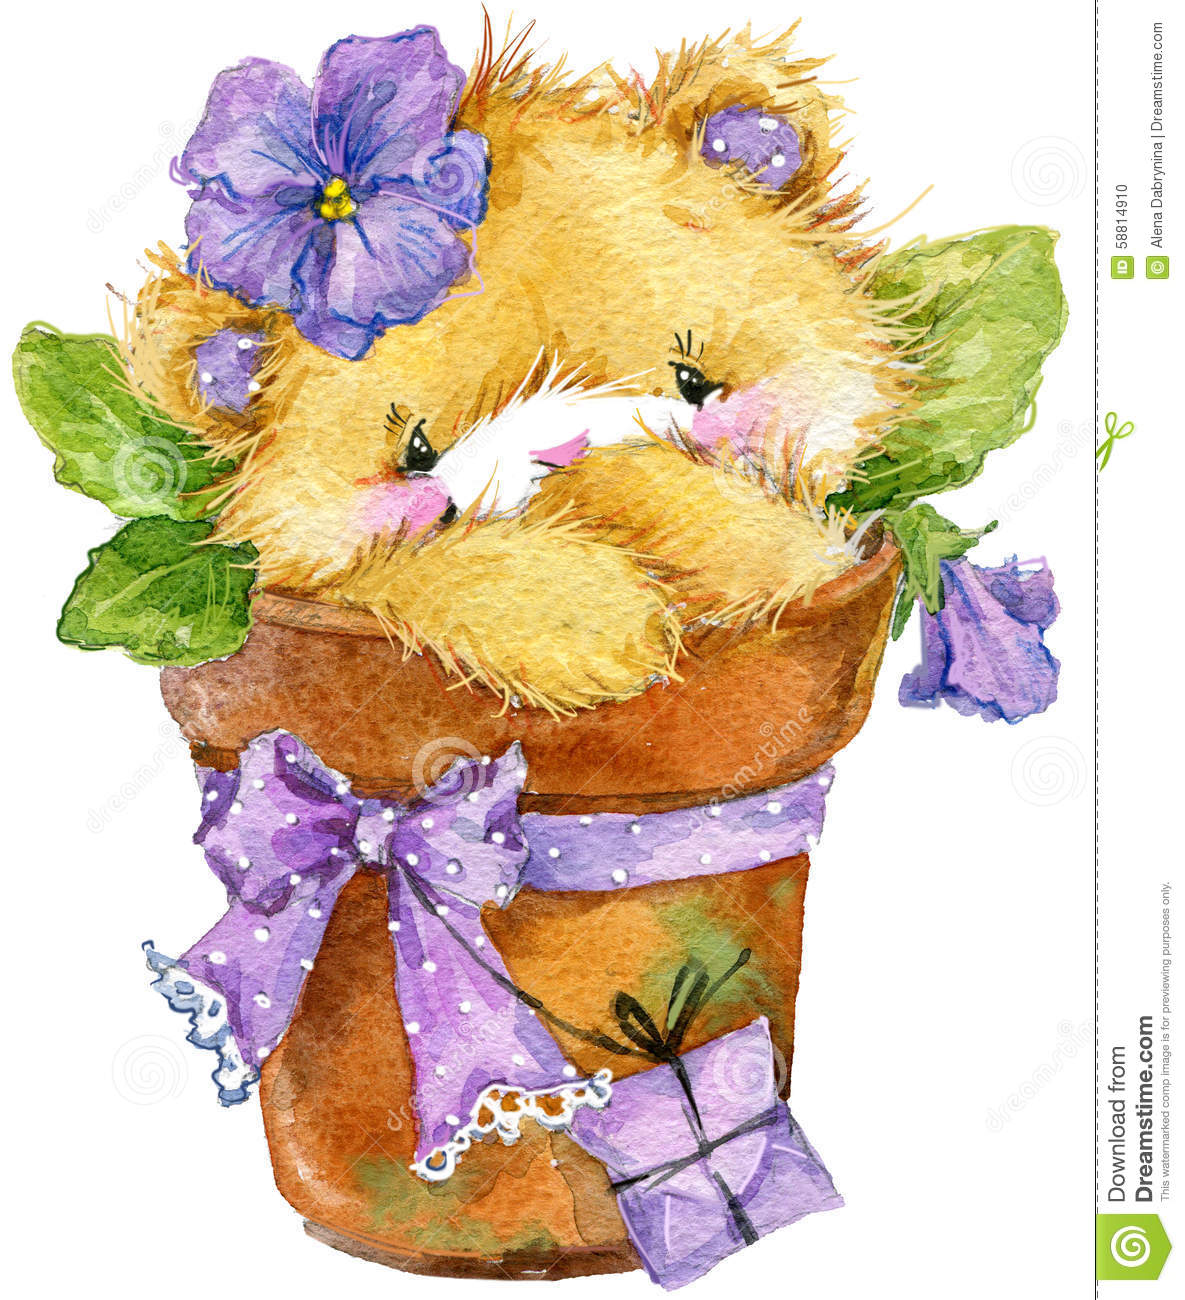 Toy Teddy Bear And Flower Violet Watercolor Illustration Stock